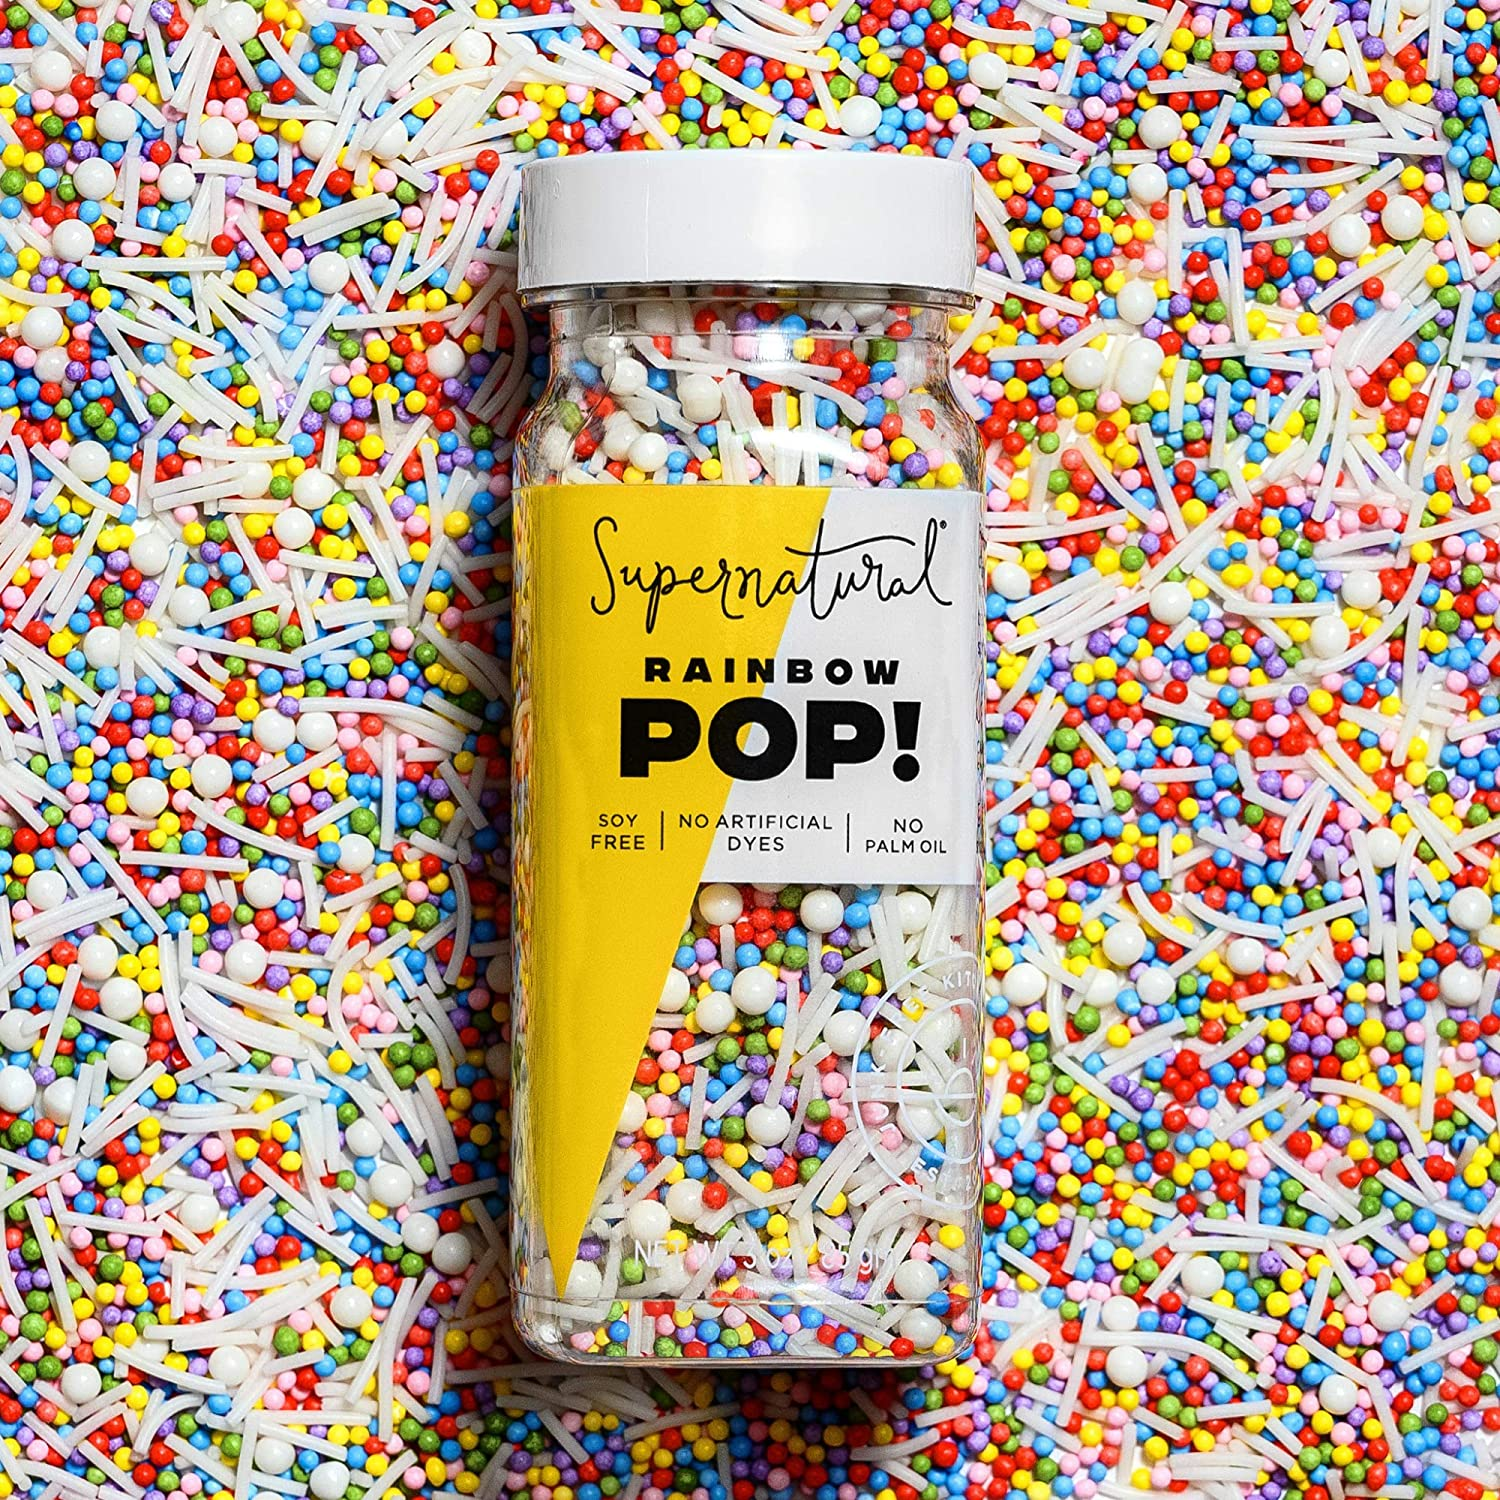 Rainbow Pop! Sprinkles by Supernatural, Nonpareil Sprinkles, Gluten-Free, Vegan, No Artificial Dyes, Soy Free for Healthy Baking, 3 oz | My New Healthy Hair Secret Weapon